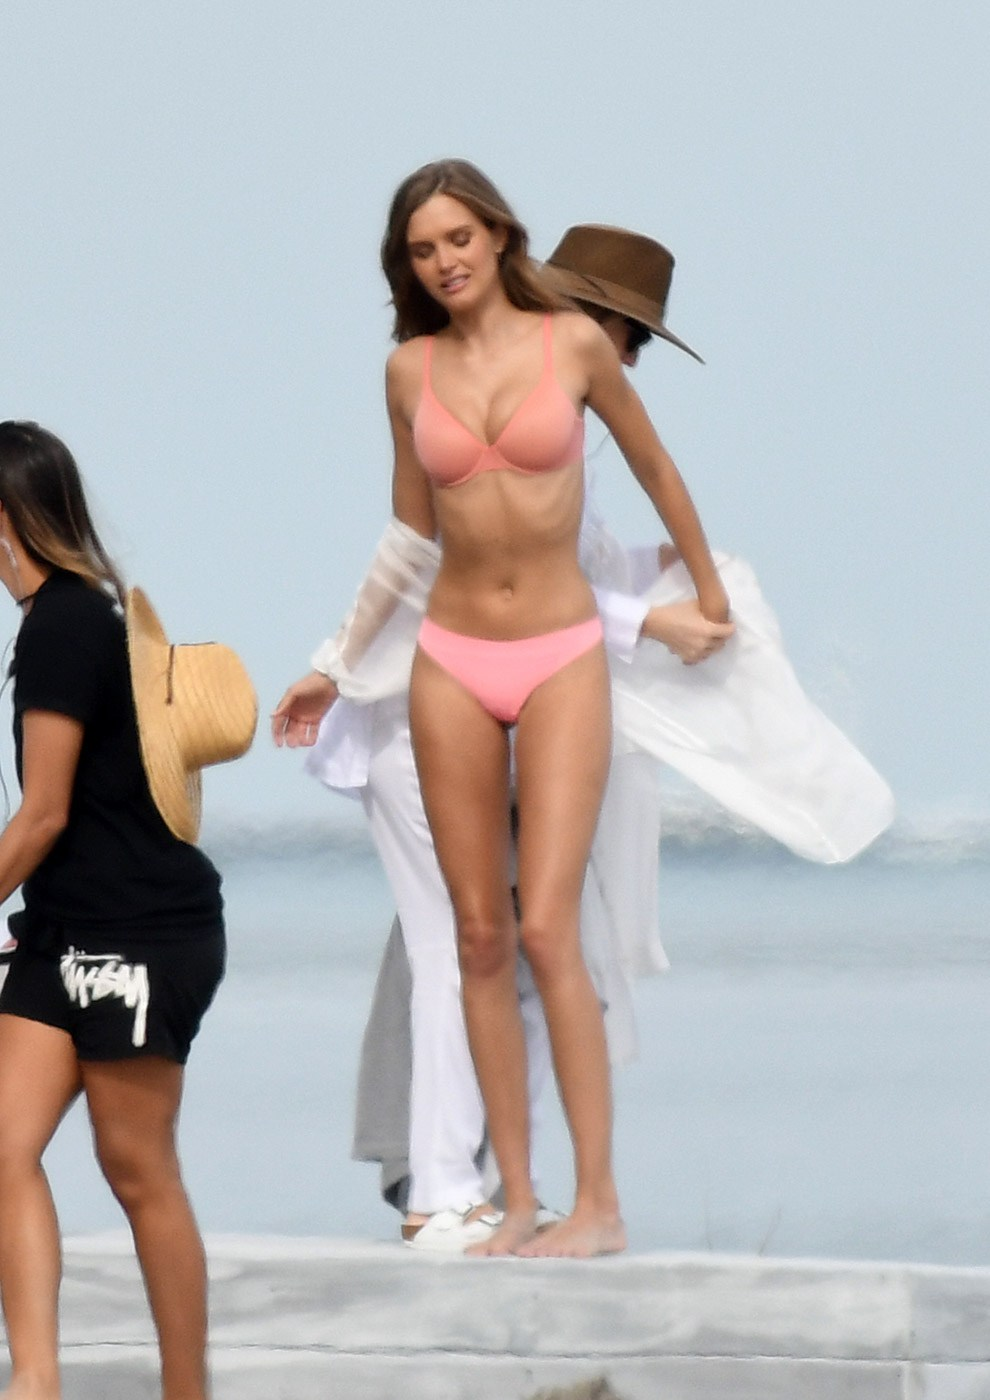 Josephine Skriver found herself at the beach without a standard sexy-as-hell swimsuit, so instead ... she went with the pretty-in-pink lingerie look.